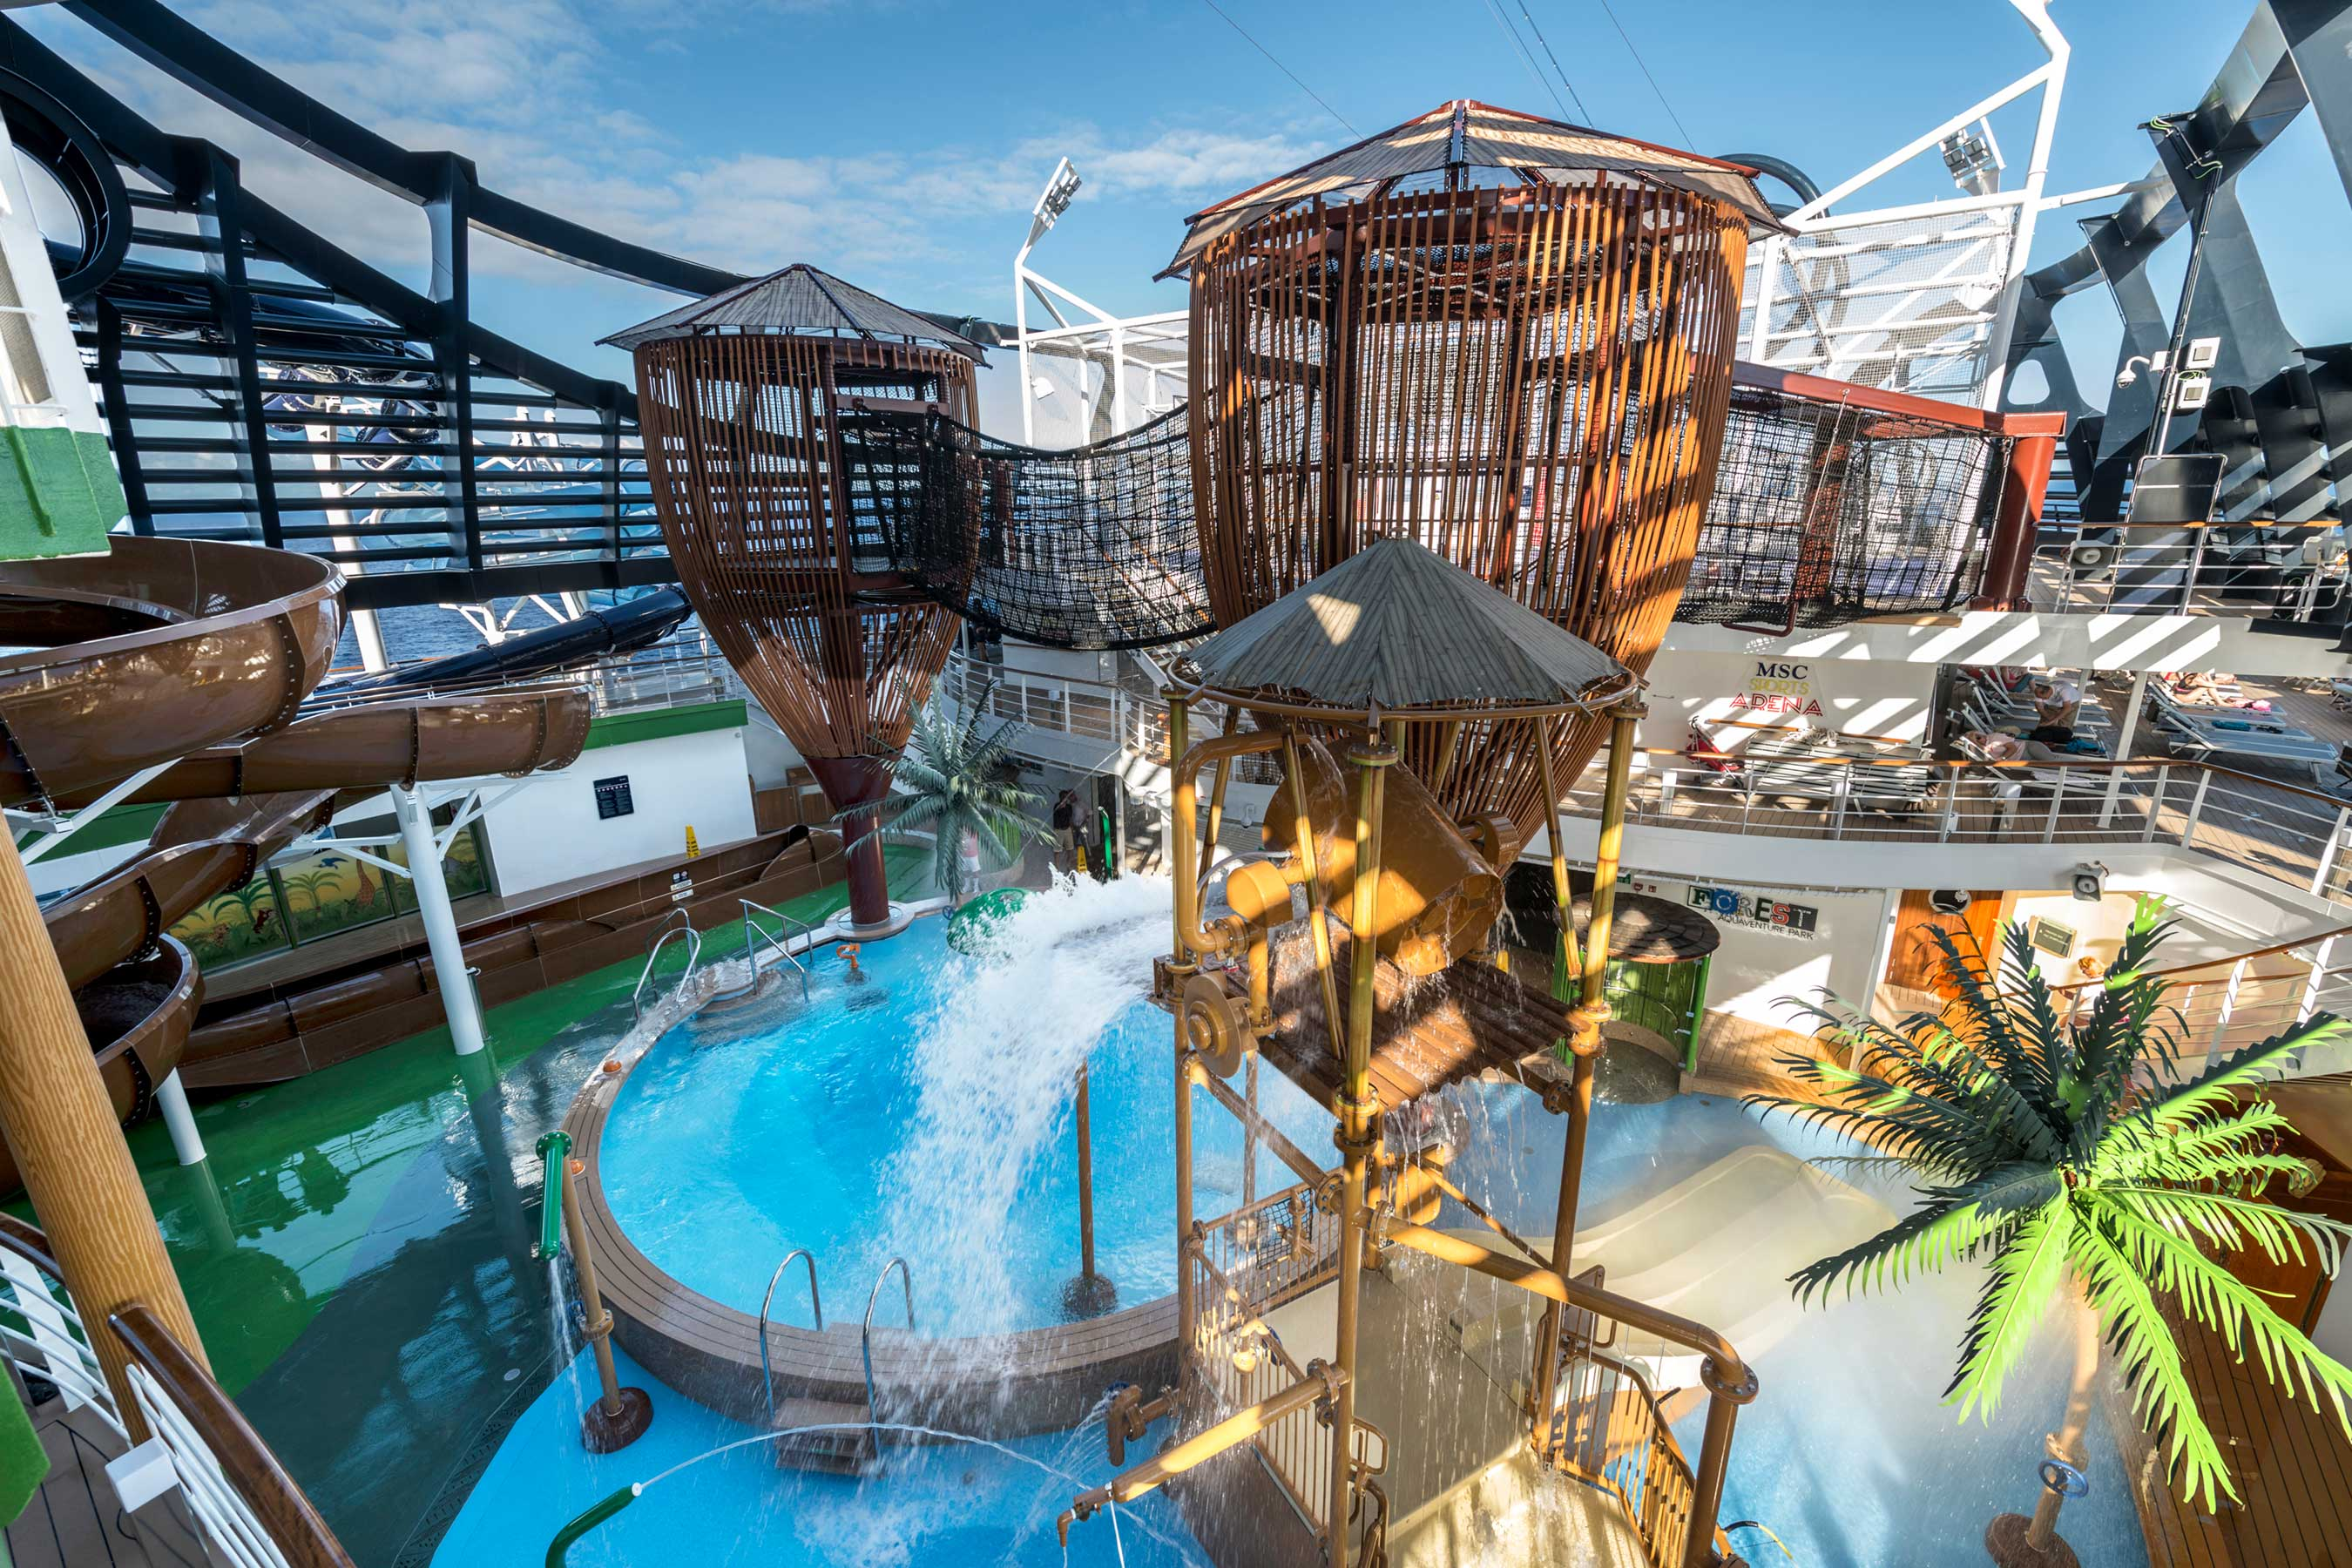 MSC Cruises Invites The Whole Family To An Island-Hopping